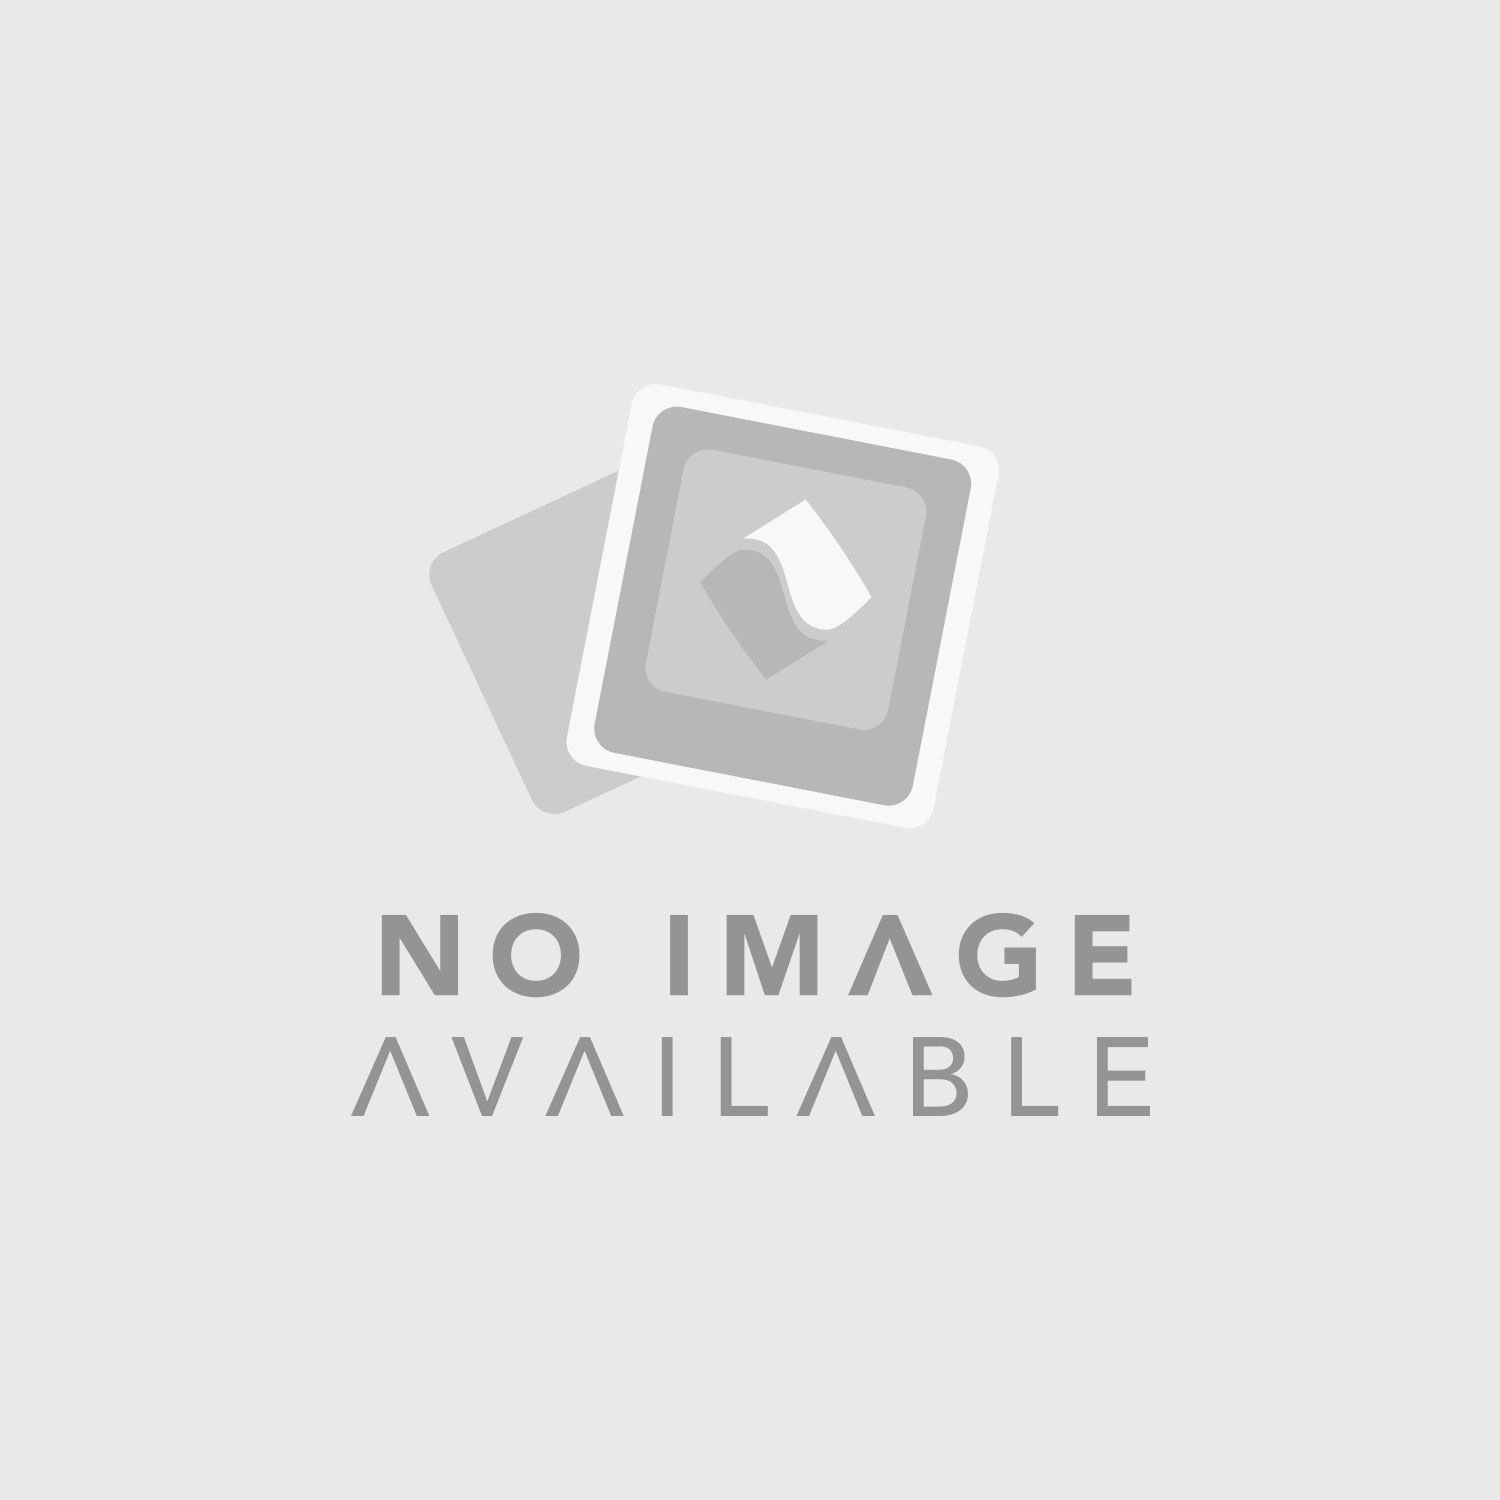 Canare BCP-B3F 75 Ohm BNC Crimp Plug for L-3CFB